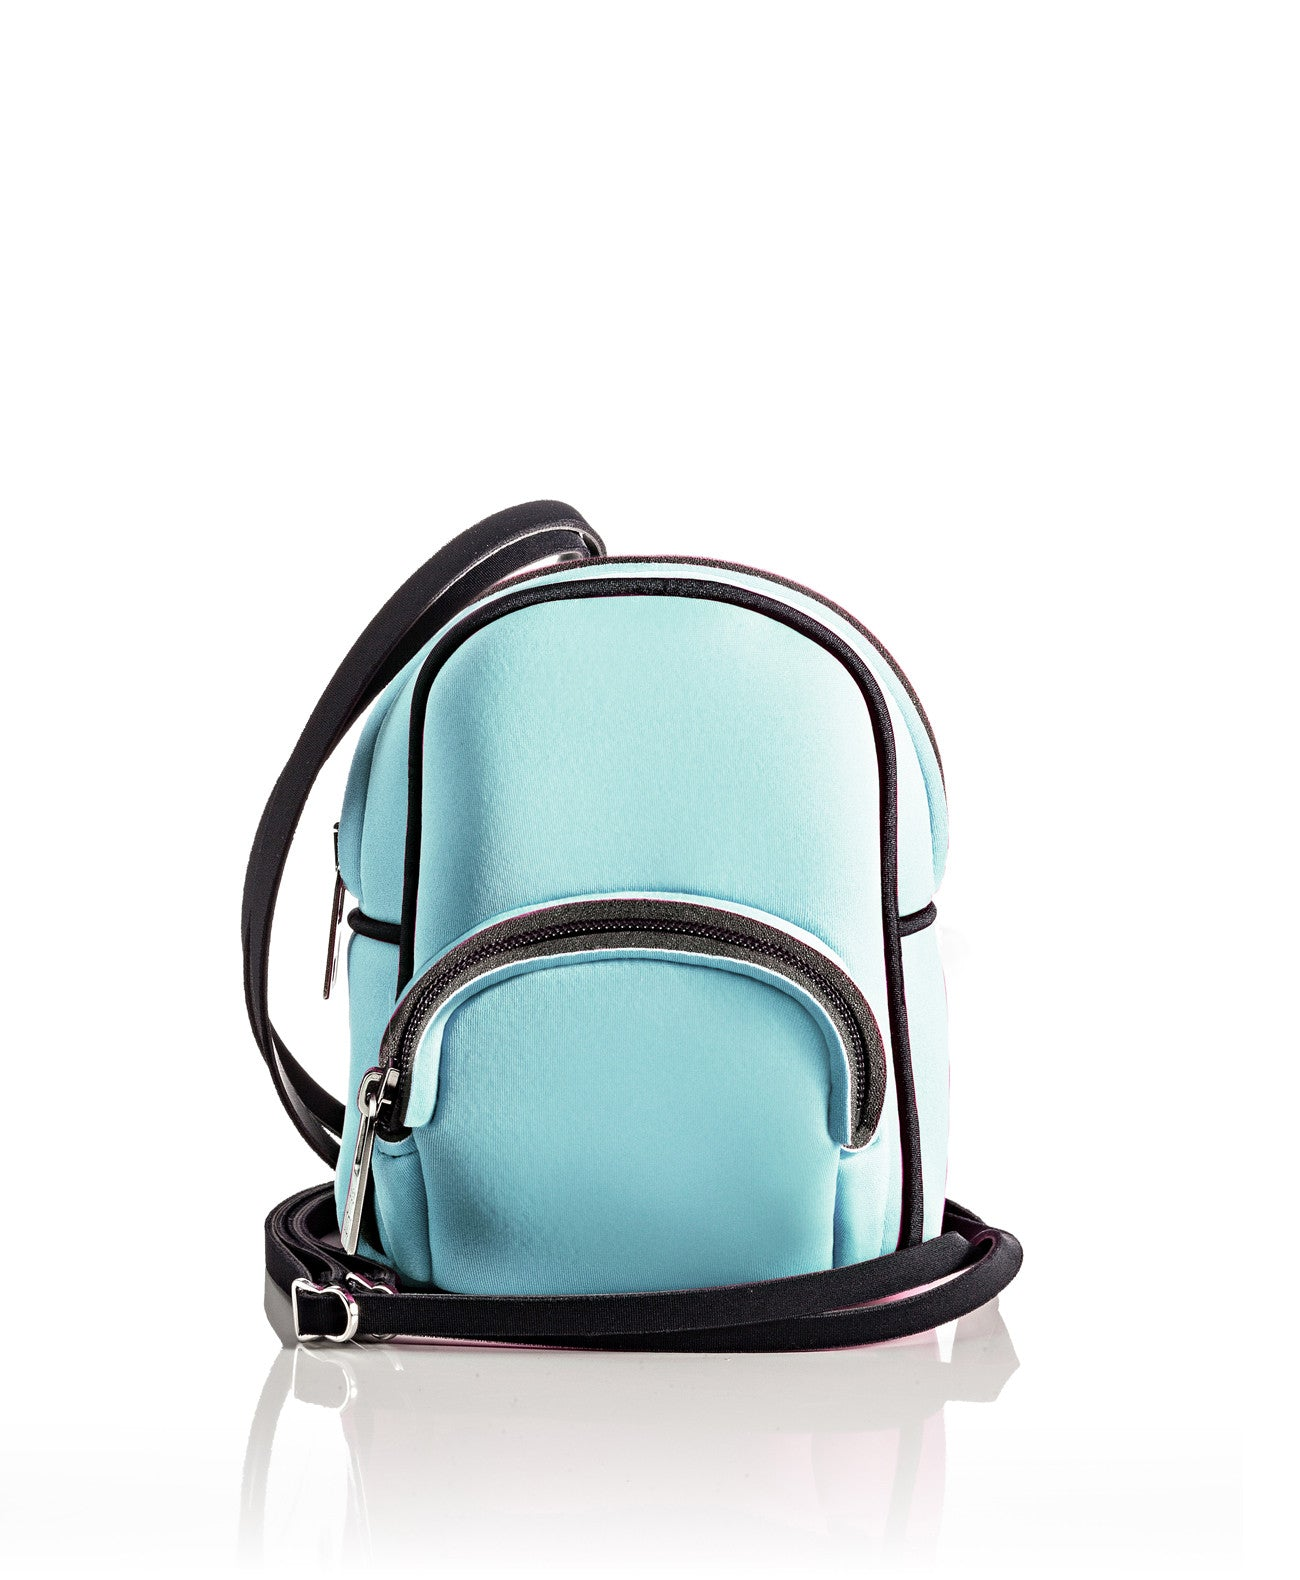 Baby Cristallo Mini Neoprene Backpack